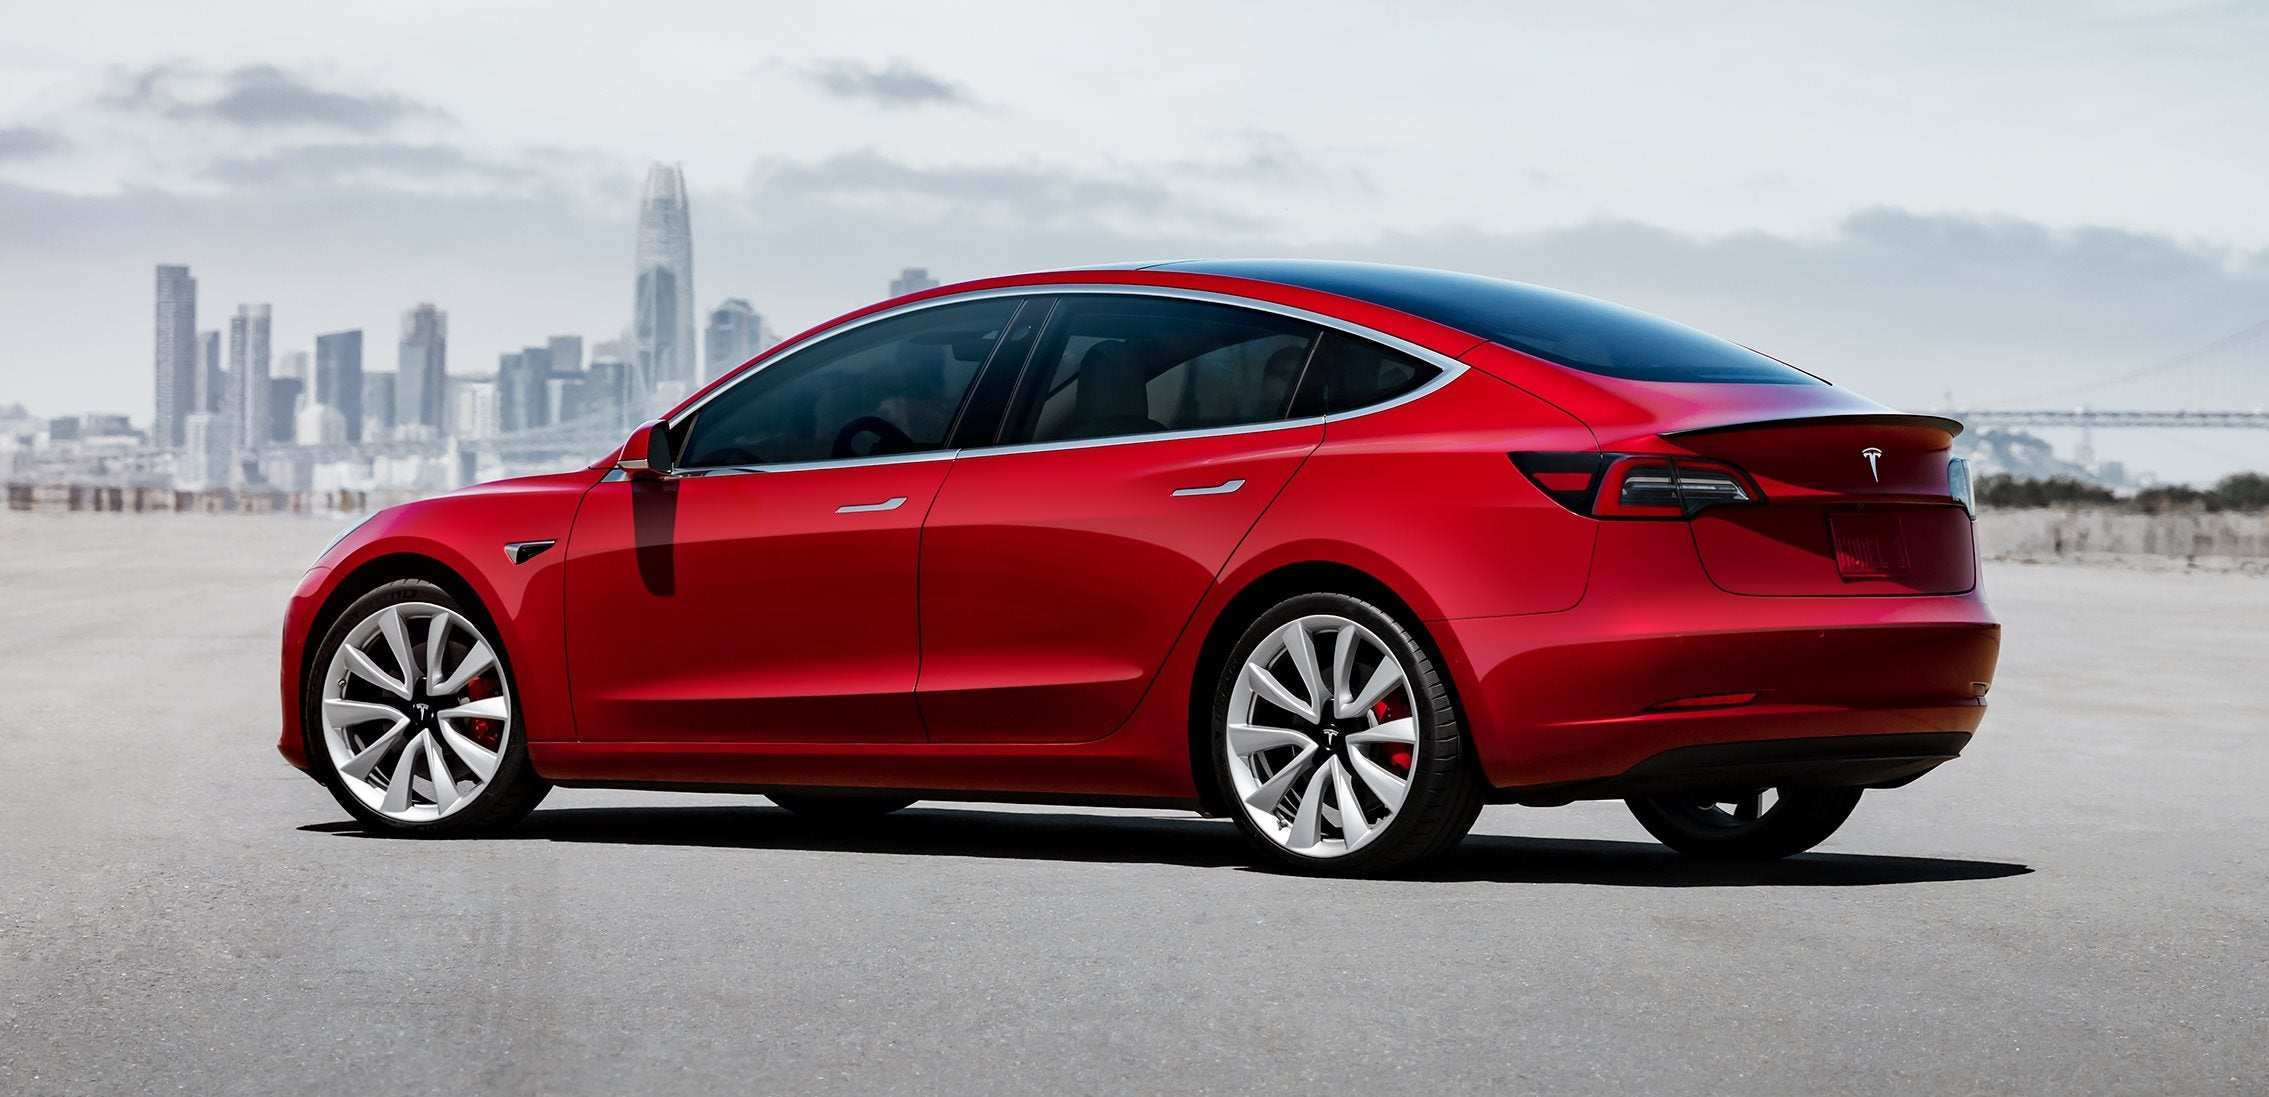 49 The 2019 Tesla Model 3 Price